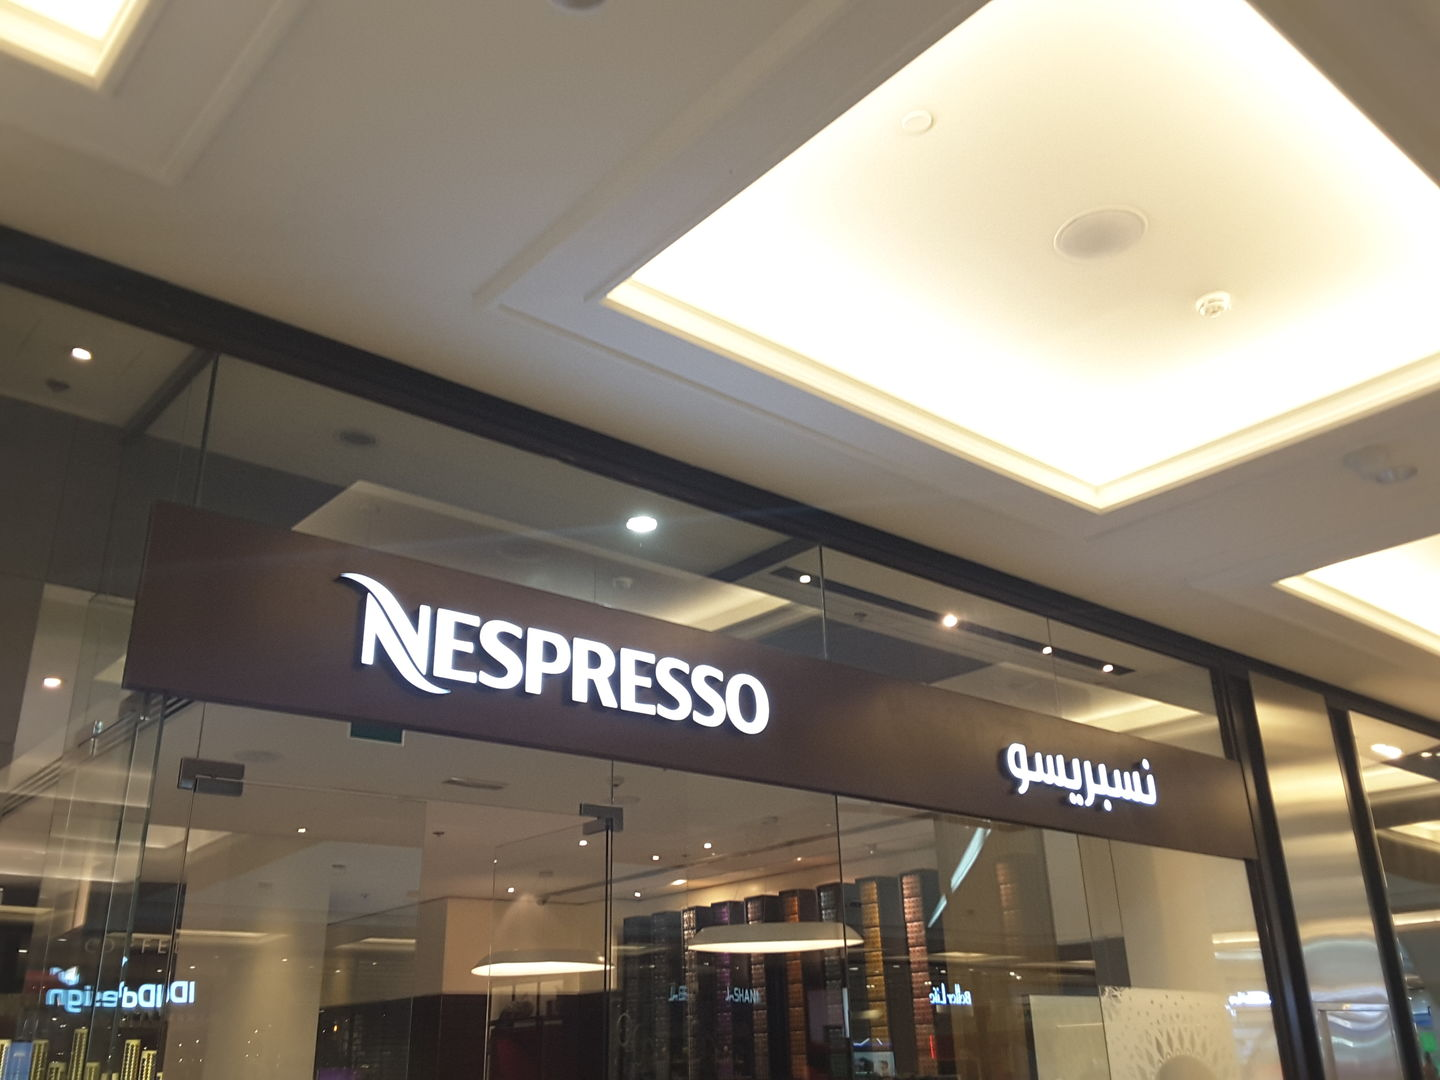 HiDubai-business-nespresso-food-beverage-supermarkets-hypermarkets-grocery-stores-al-barsha-1-dubai-2